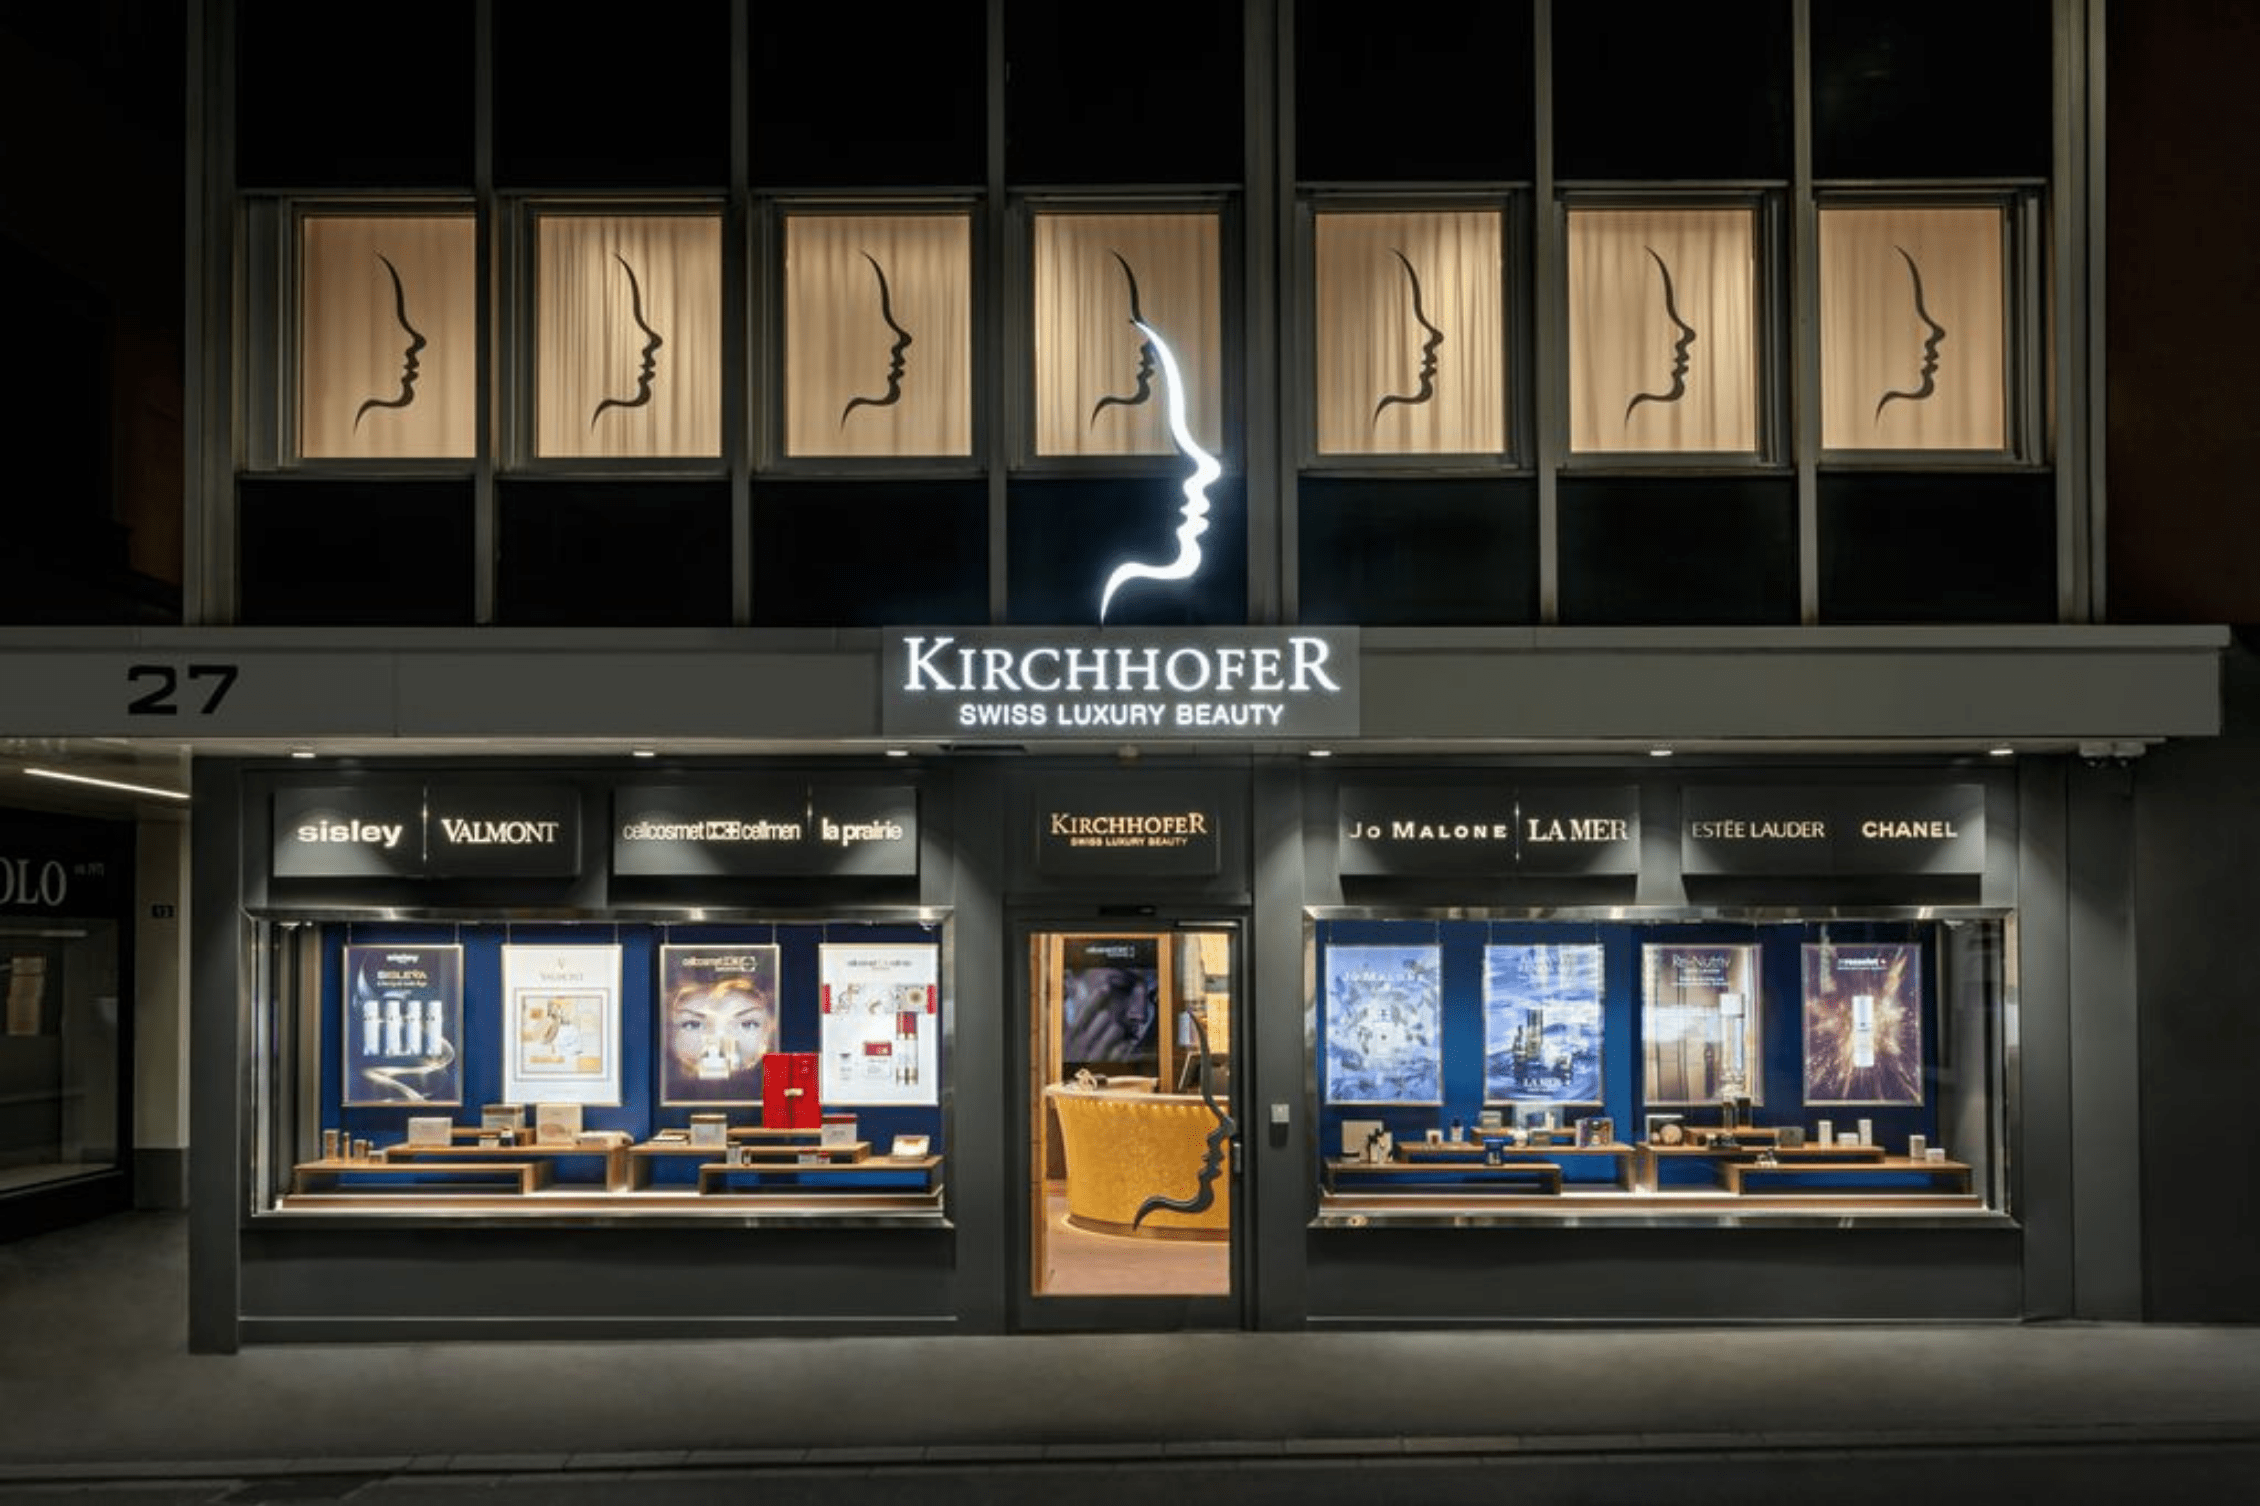 Caviarlieri at Kirchhofer Swiss luxury beauty center